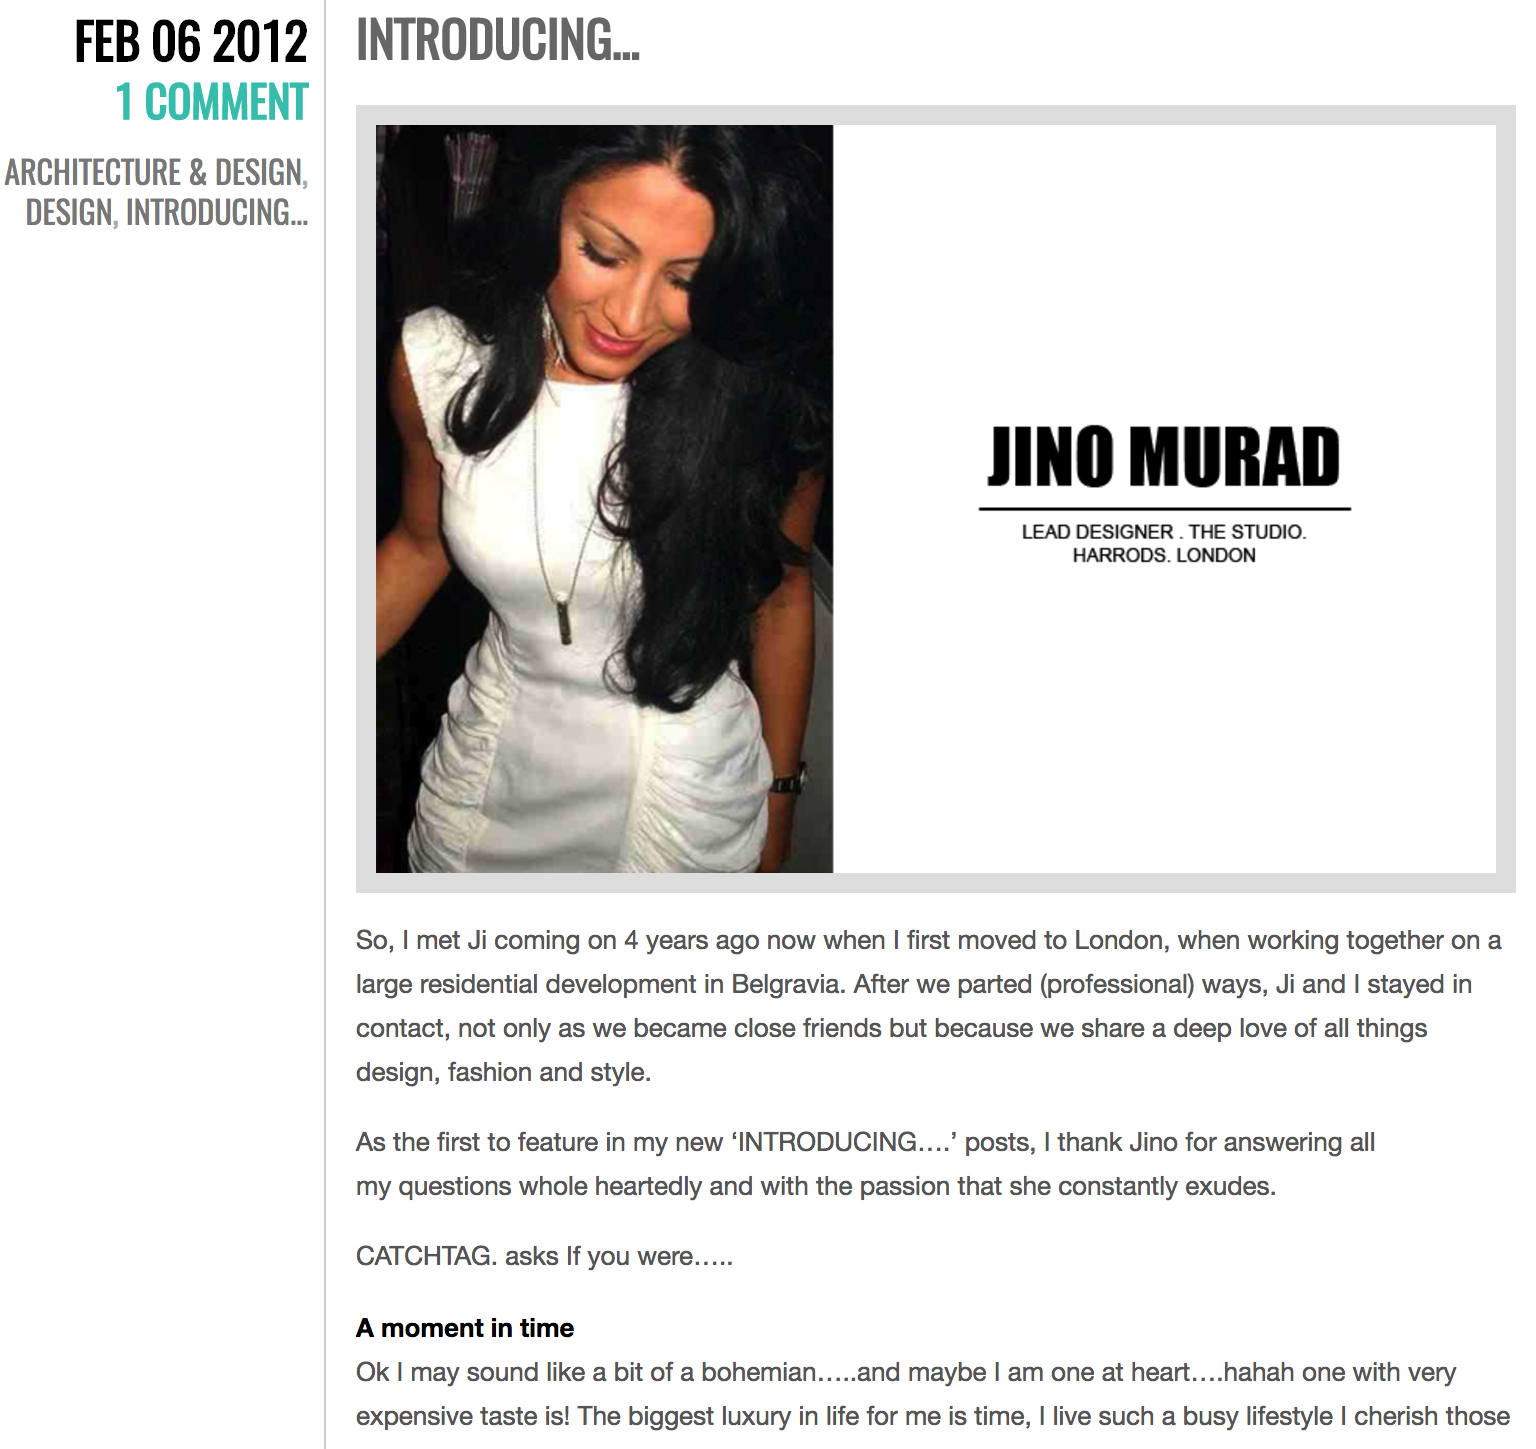 Introducing Jino Murad